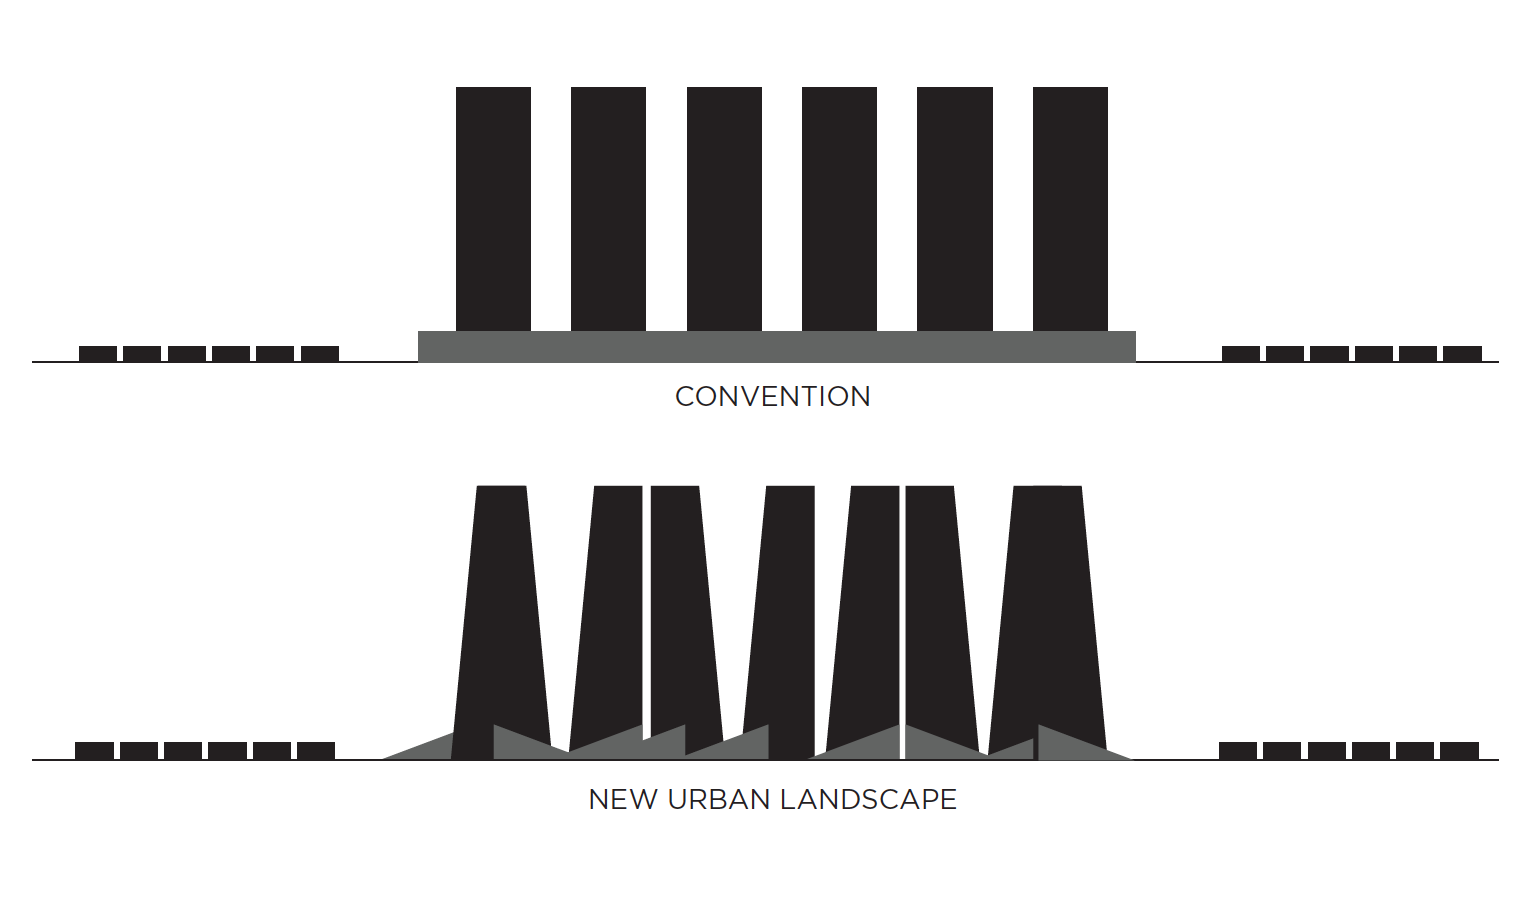 CONCEPT: NEW URBAN LANDSCAPE   Conceptually, the overall masterplan attempts to create a new urban topography for the city. Rather than towers abruptly cut off from the ground by a conventional podium, the towers meet the ground and intersect a series of wedge shaped masses that emerge from the ground. This allows access to terraced roofscapes and programs to and from the street. The tapered forms of the towers are natural extensions from this lower level topography.